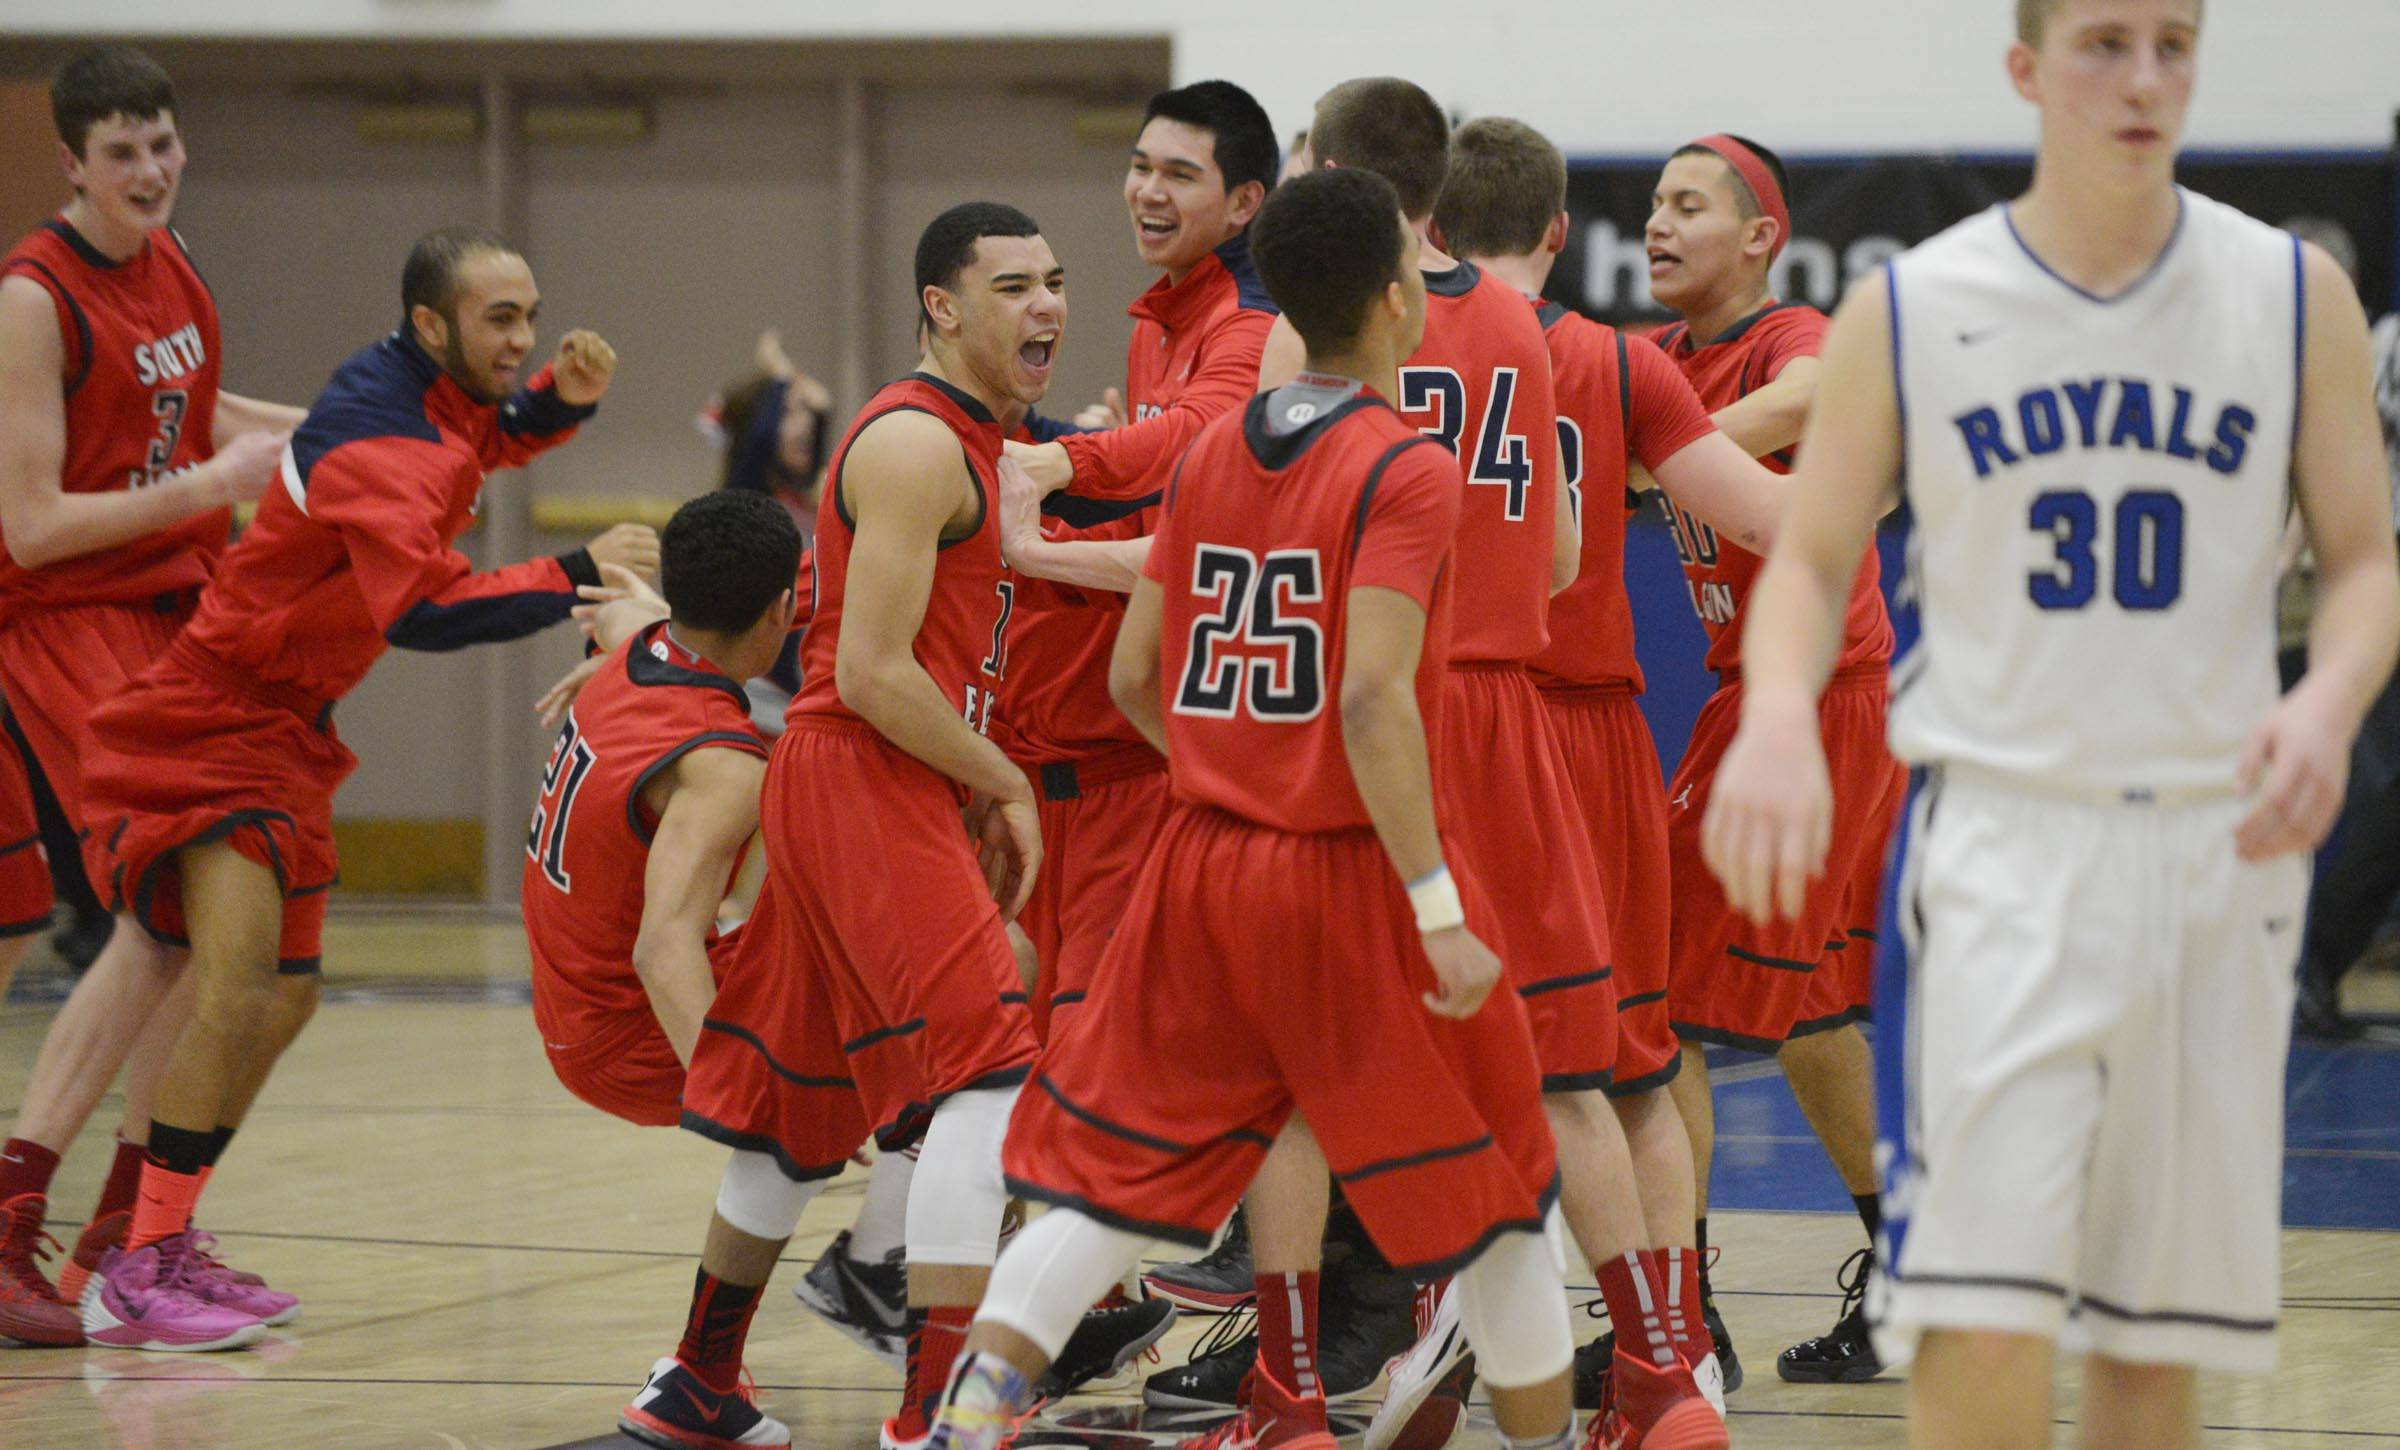 South Elgin celebrates their win Tuesday in the St. Charles North regional game against the Larkin Royals.